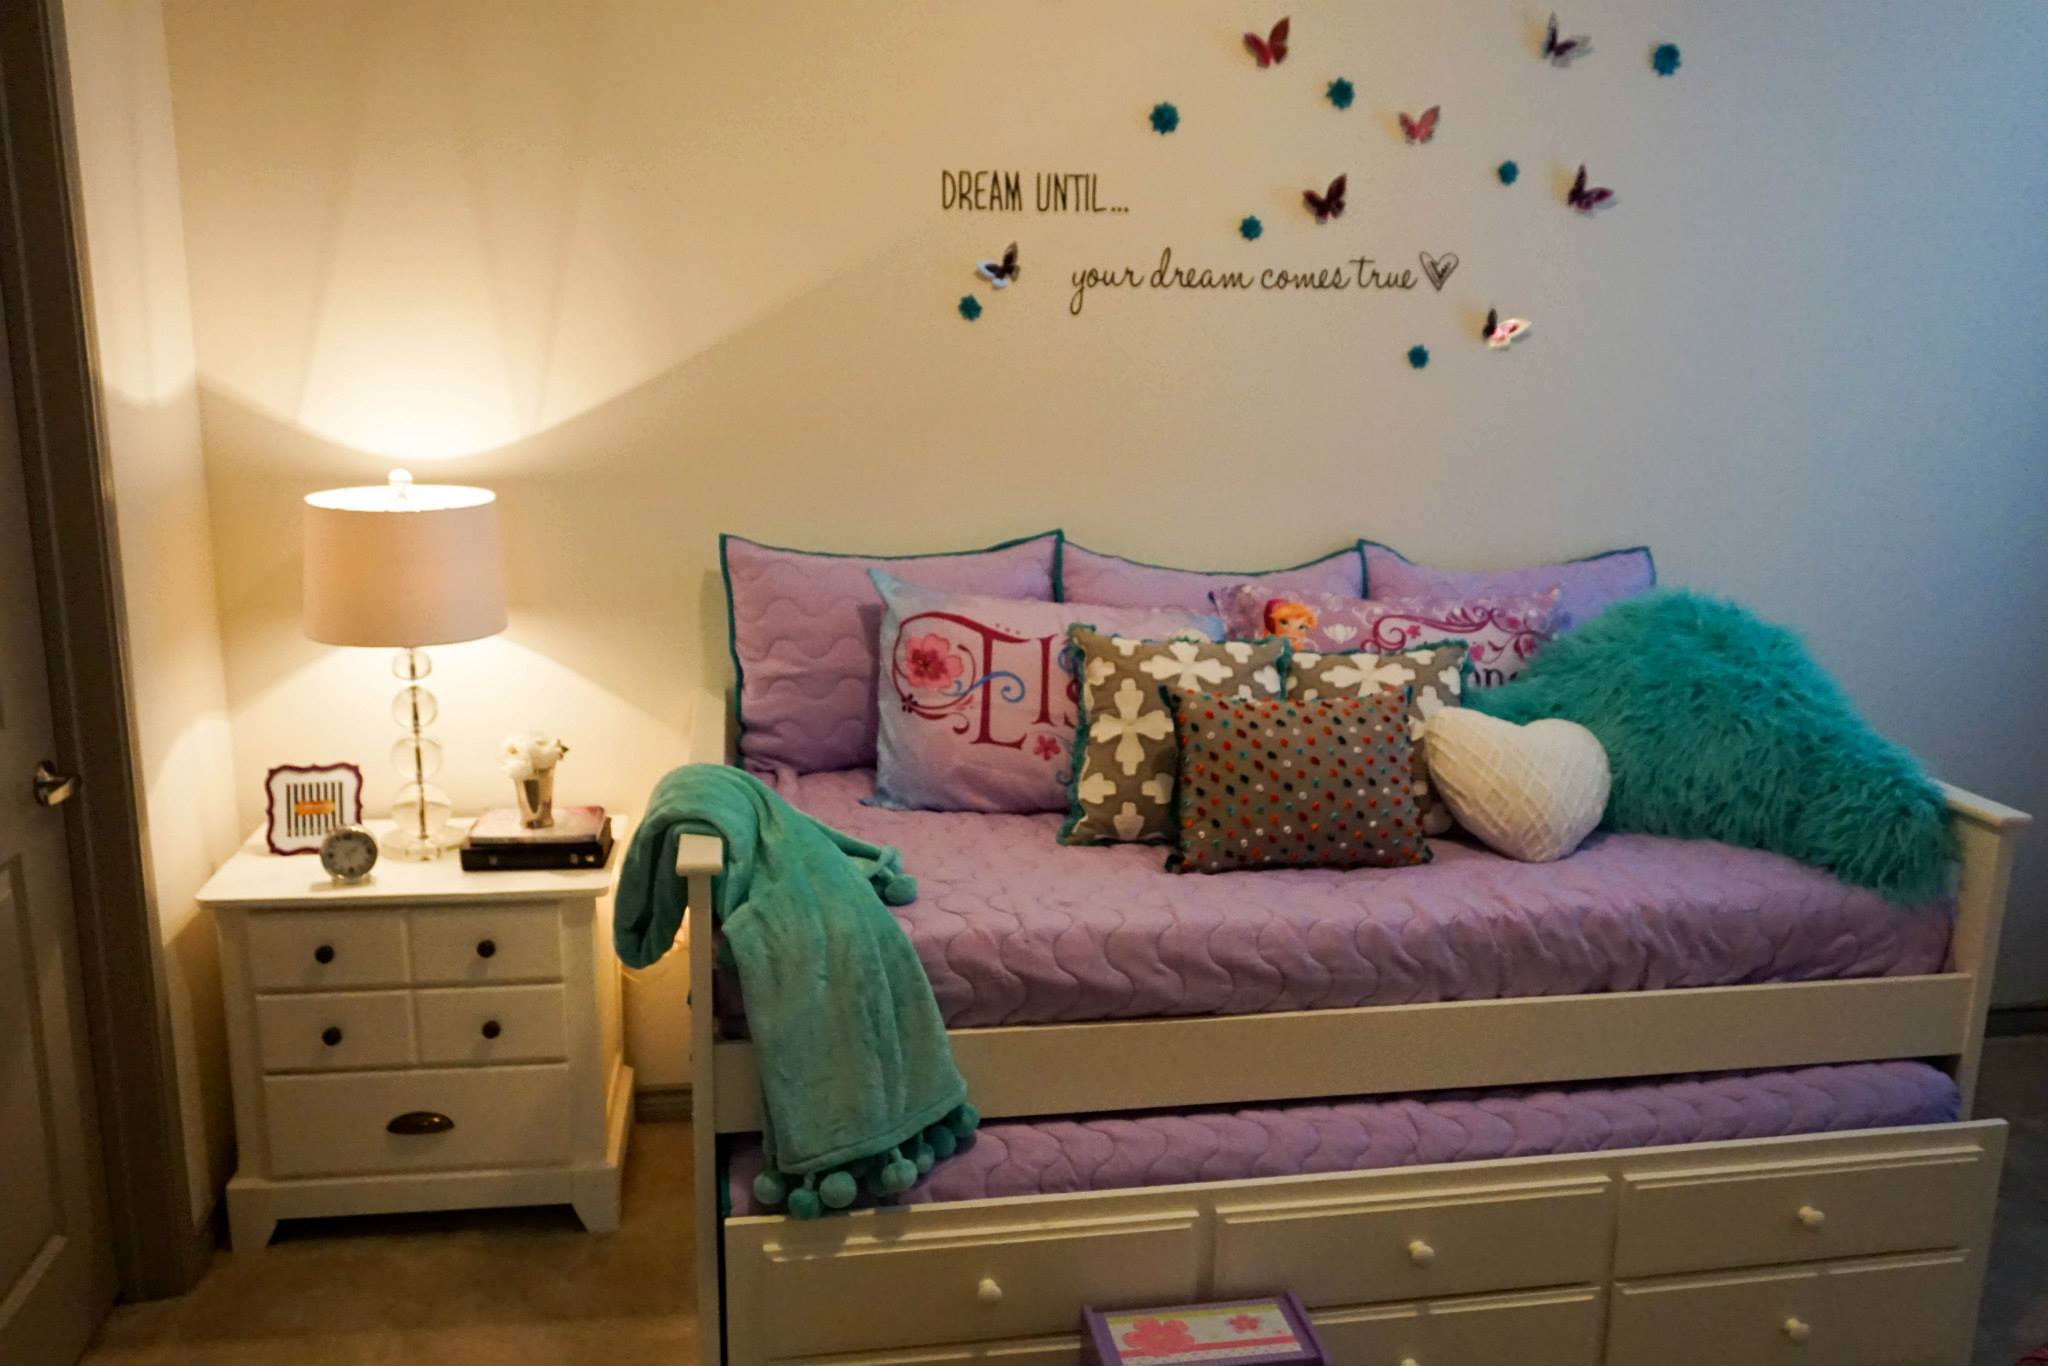 2nd Bed - after